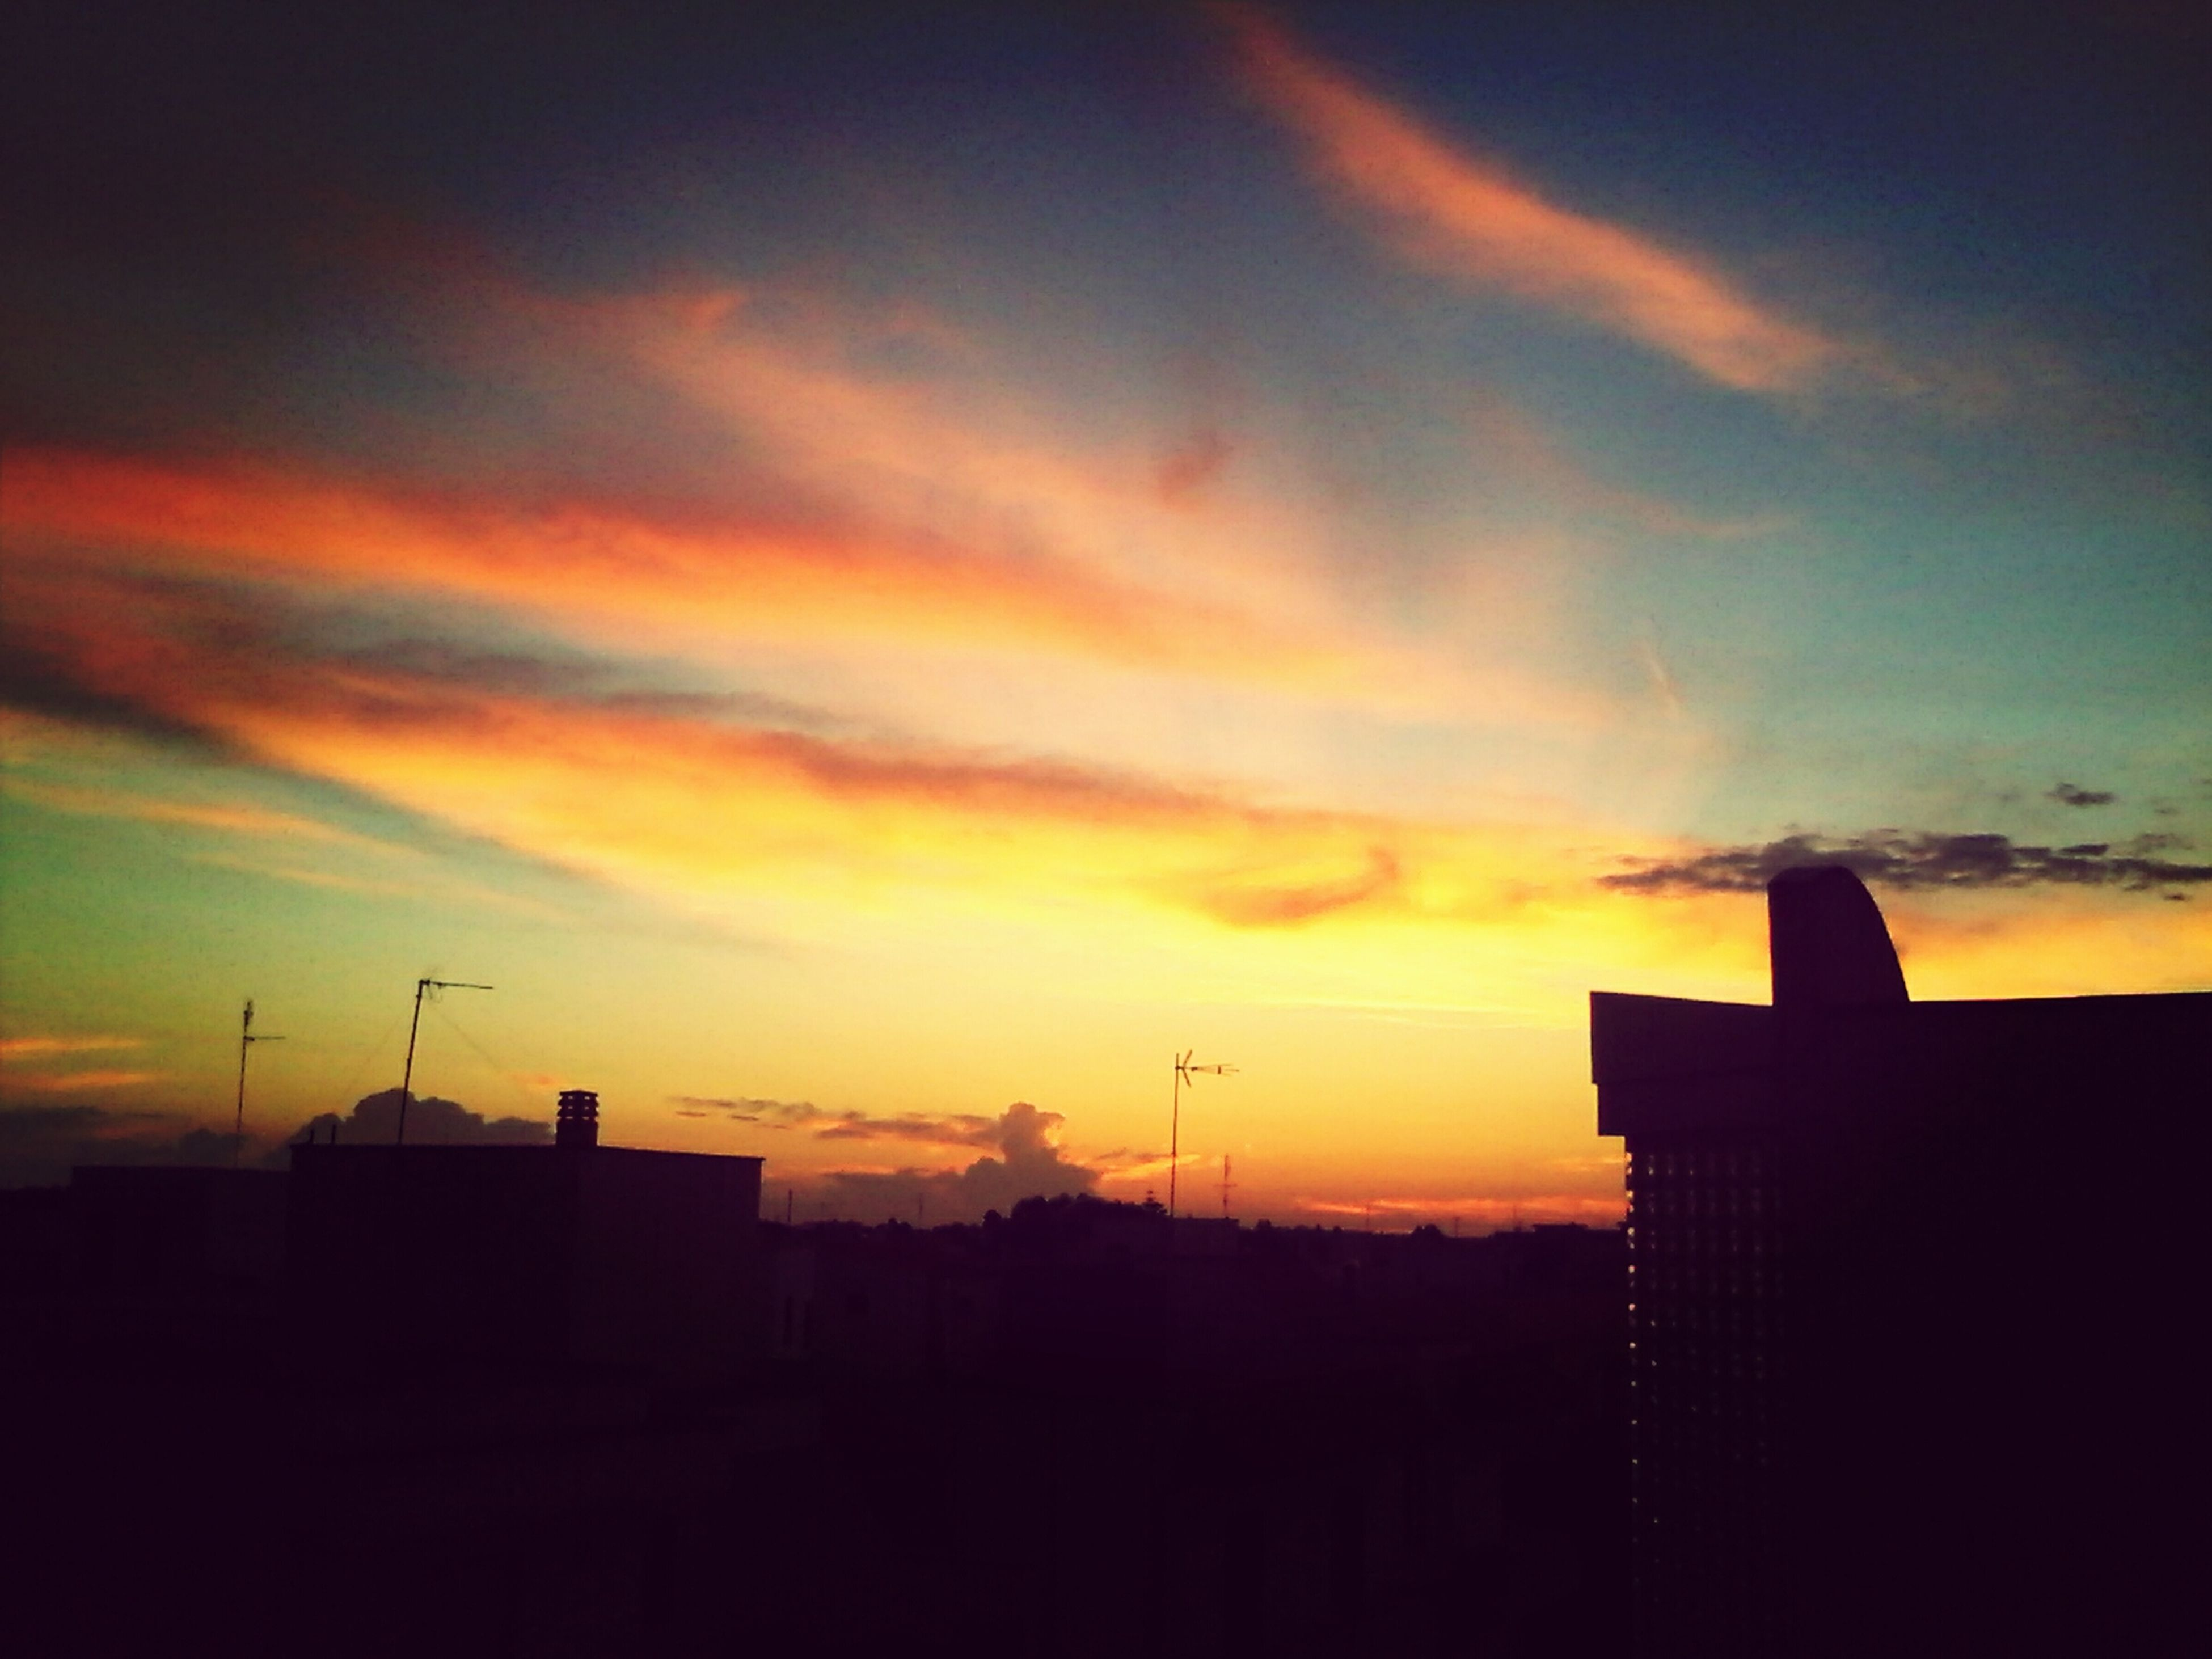 sunset, silhouette, building exterior, built structure, architecture, sky, orange color, cloud - sky, dramatic sky, beauty in nature, cloud, scenics, dark, outline, city, nature, cloudy, building, moody sky, low angle view